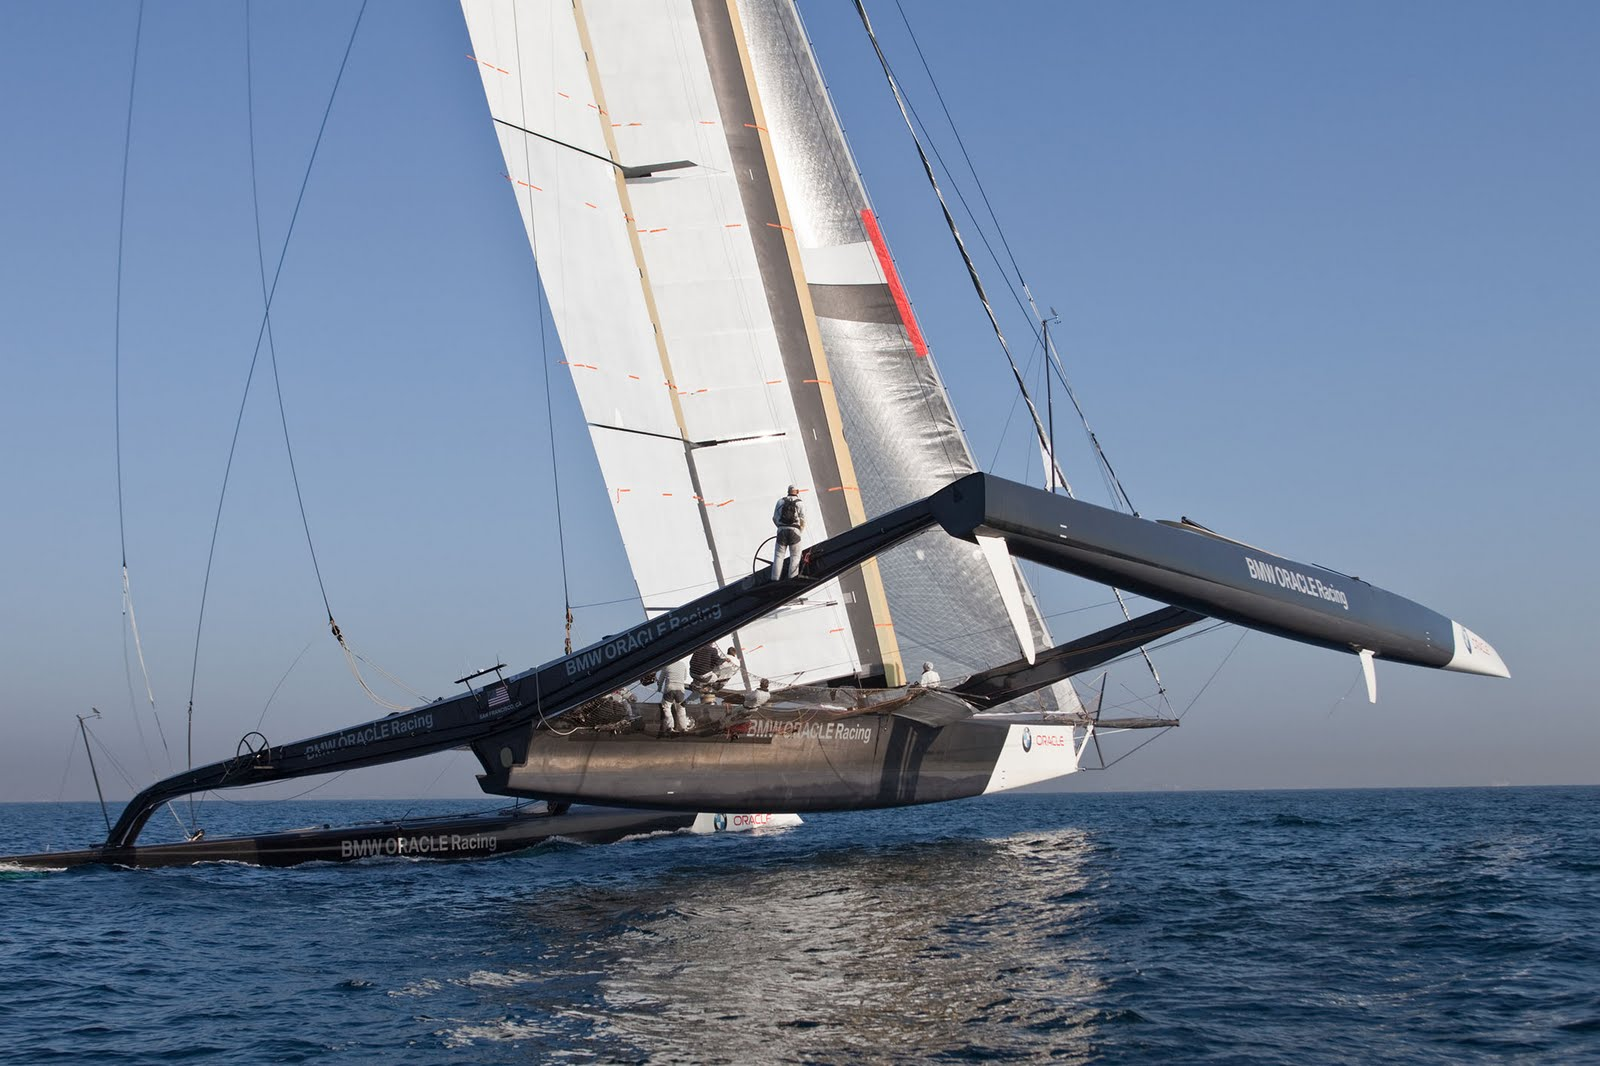 BMW Oracle 90 Foot Trimaran